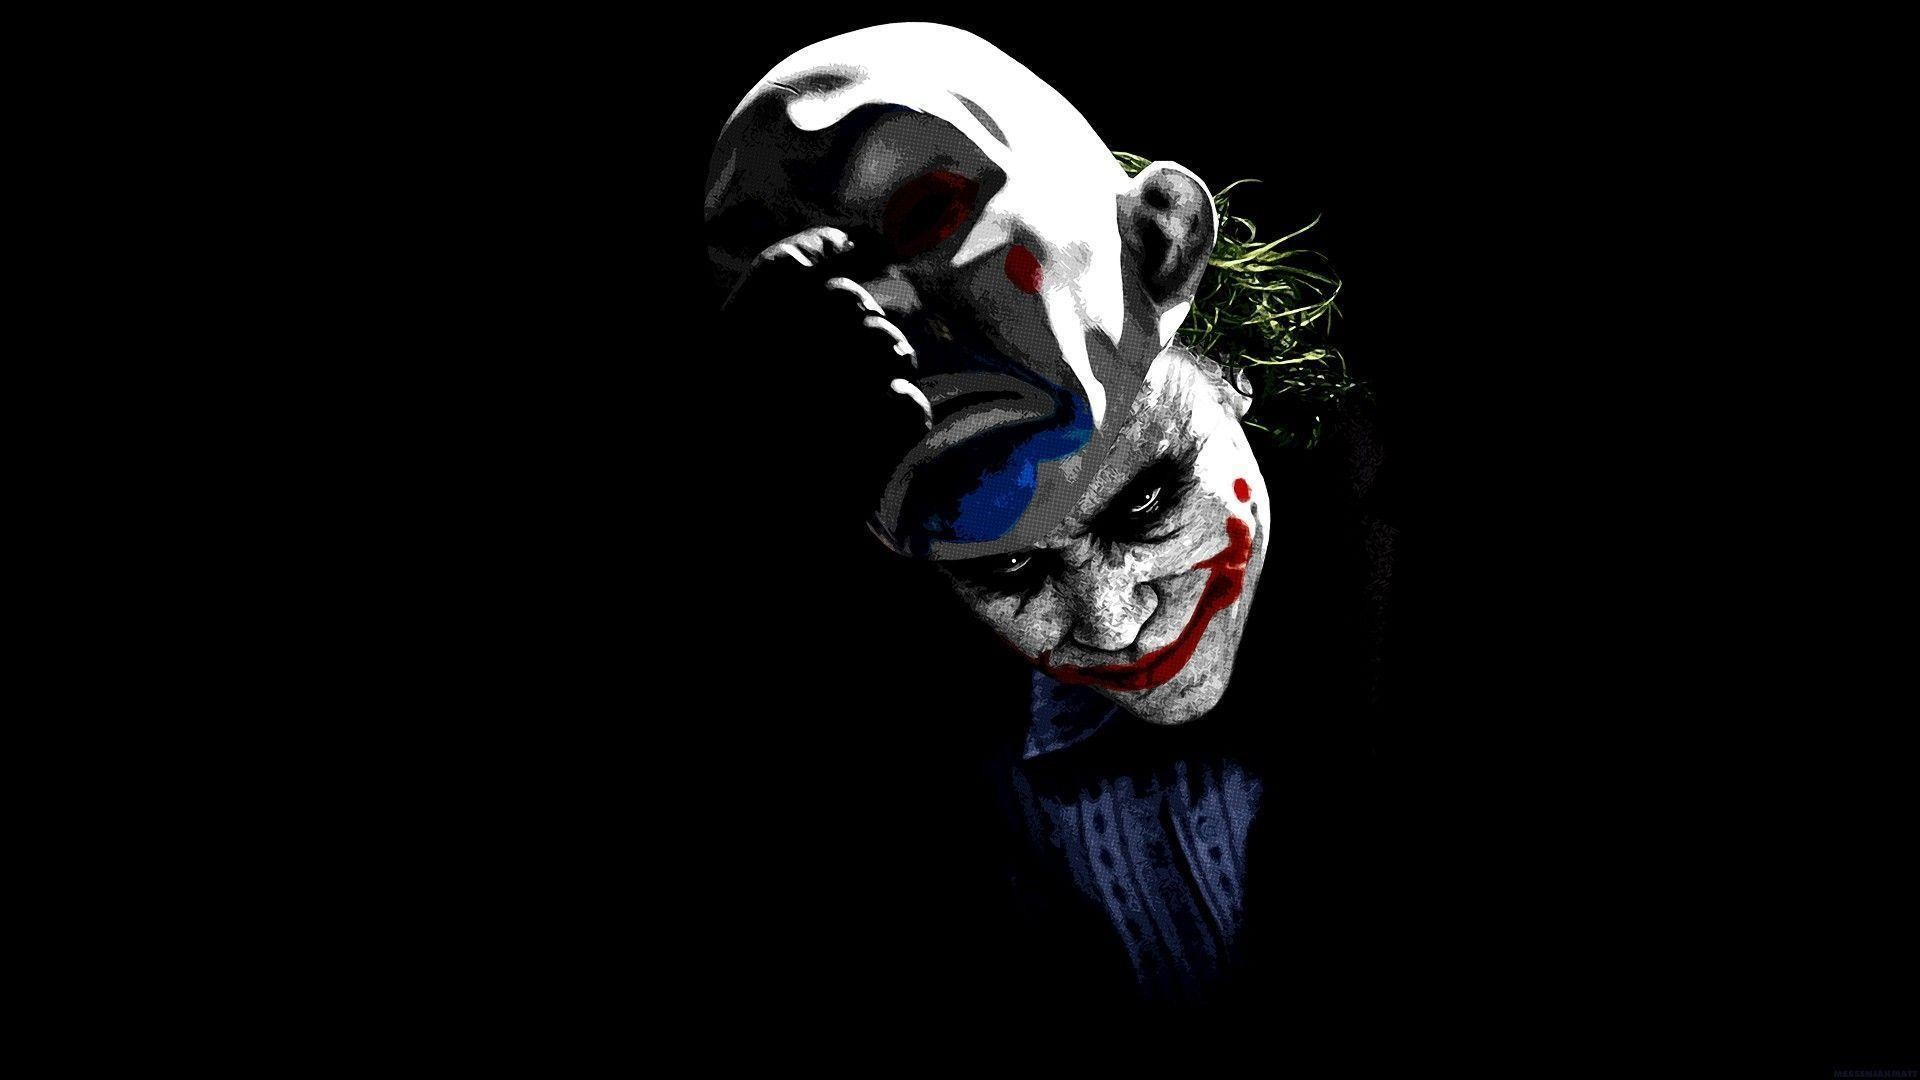 Res: 1920x1080, Wallpapers For > Evil Clown Wallpaper Hd